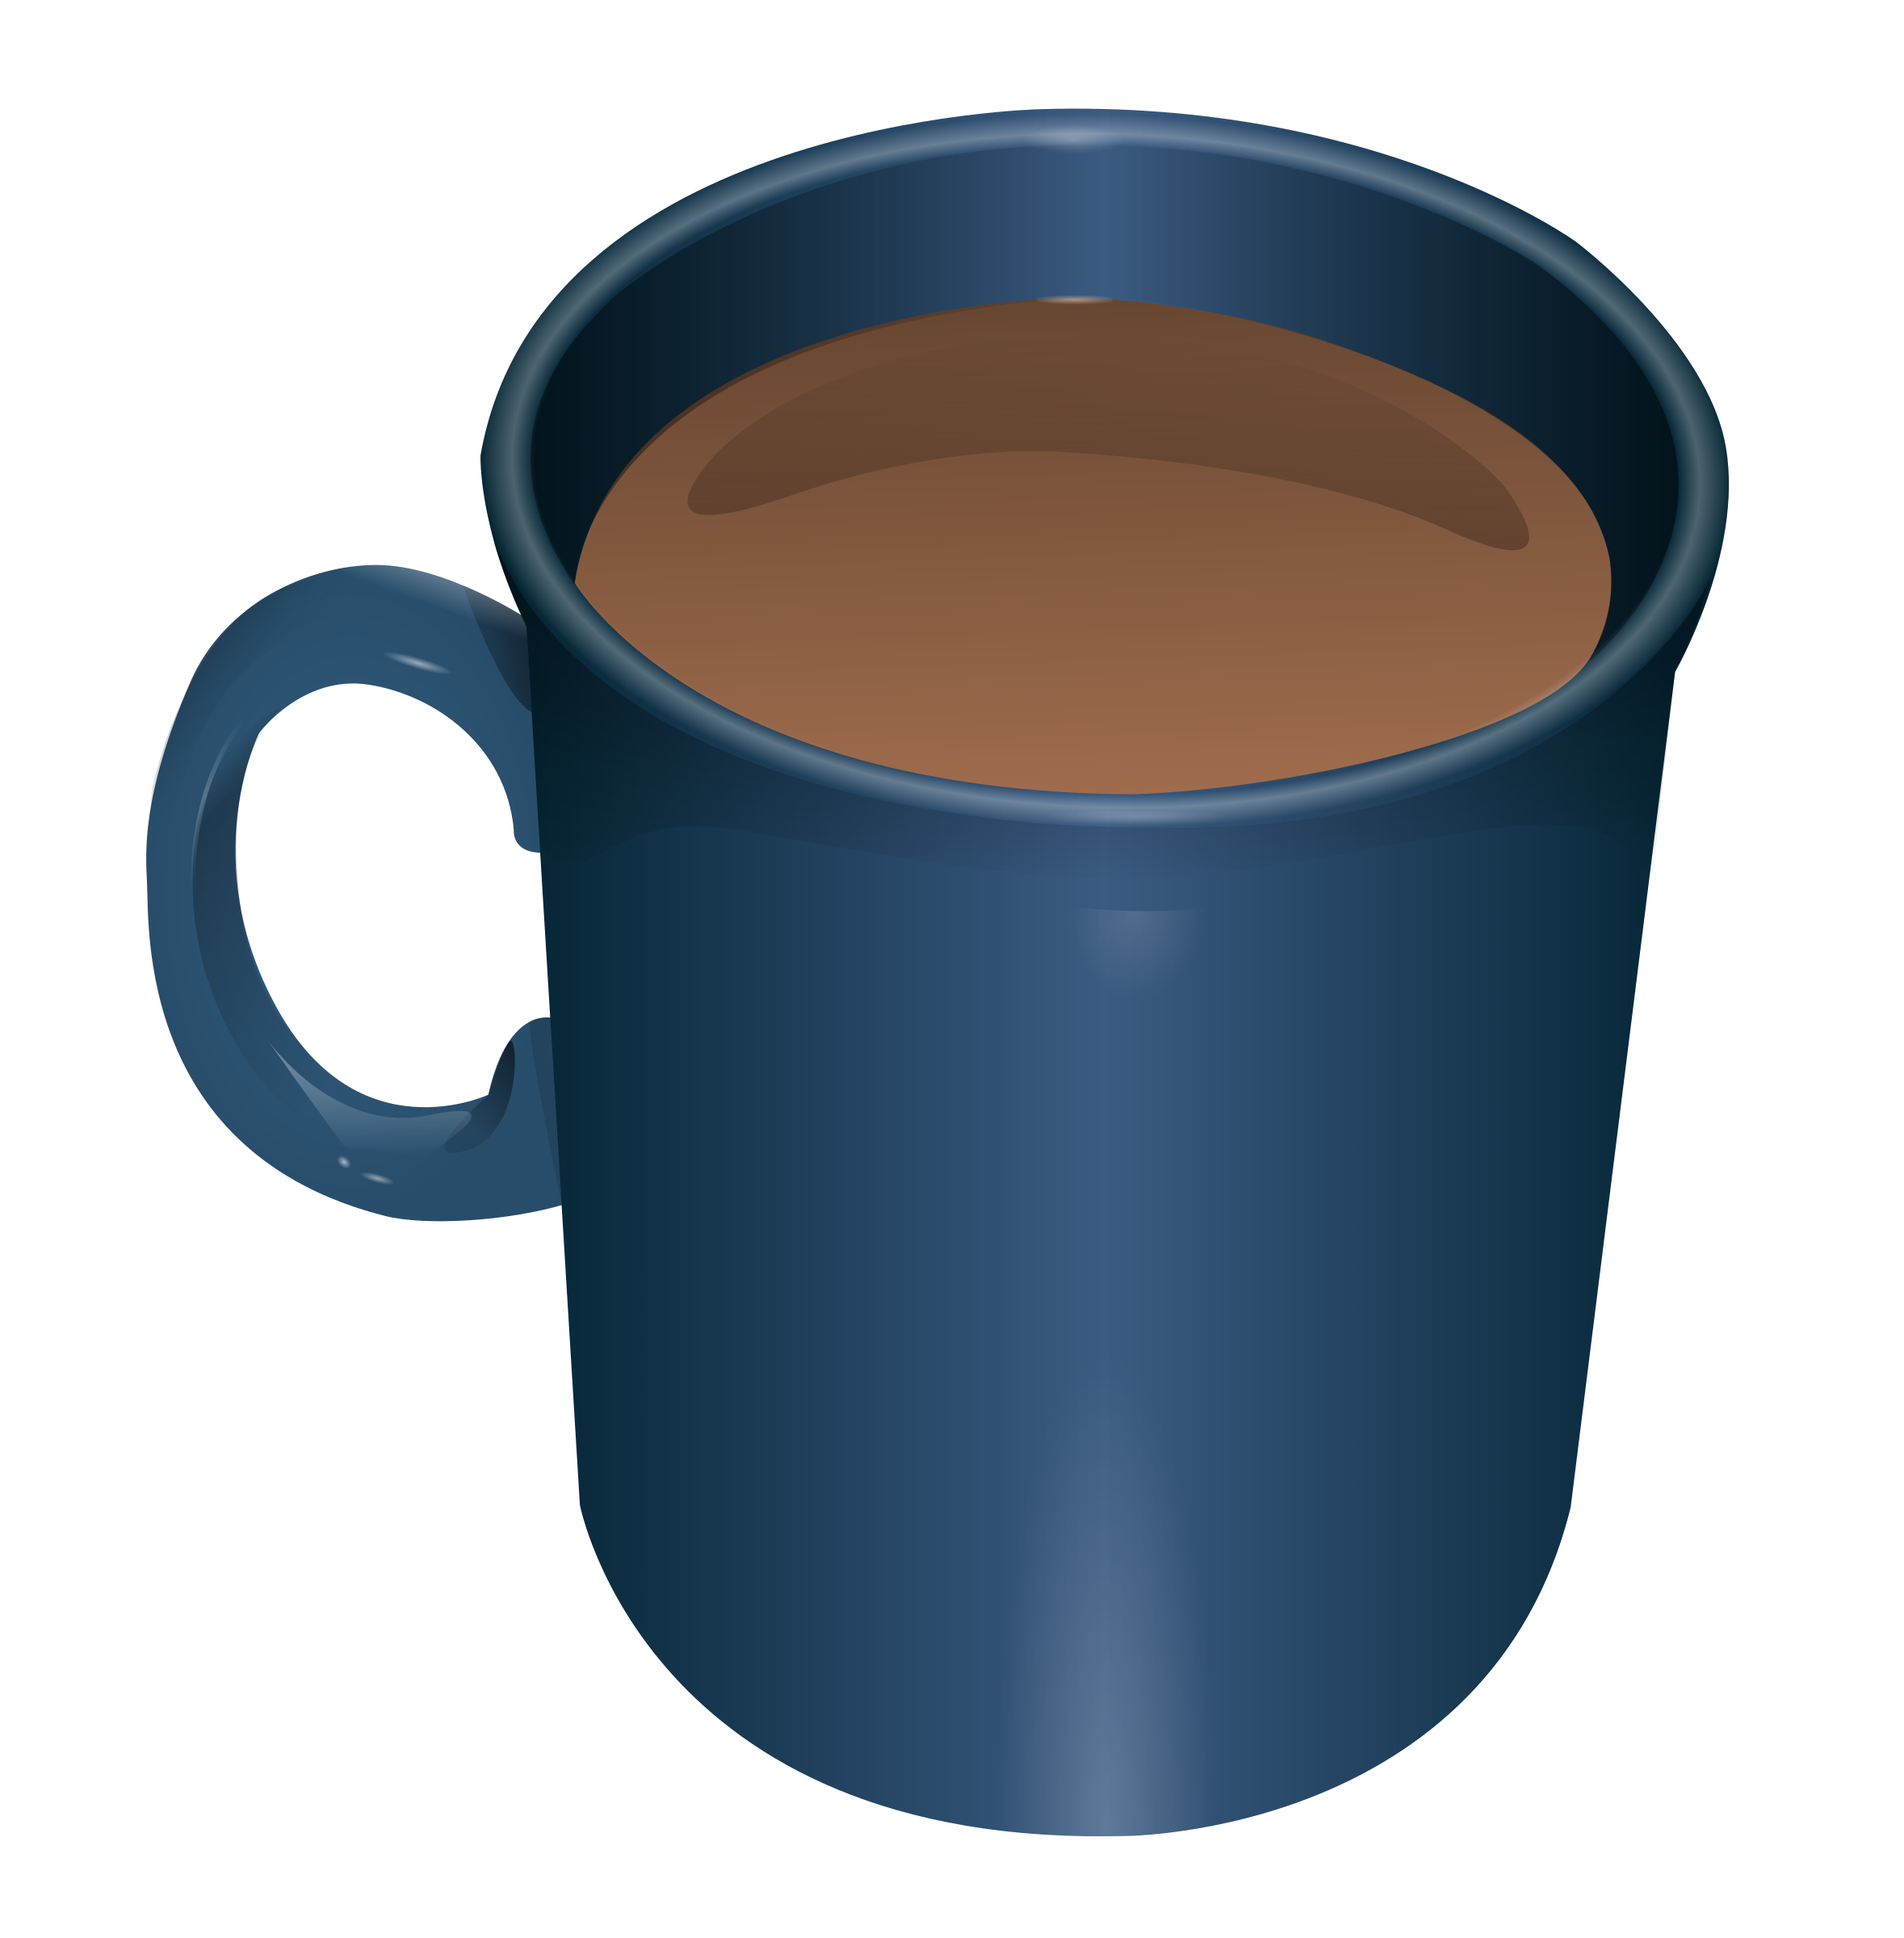 clipart royalty free library Mug clipart. Coffee big image png.